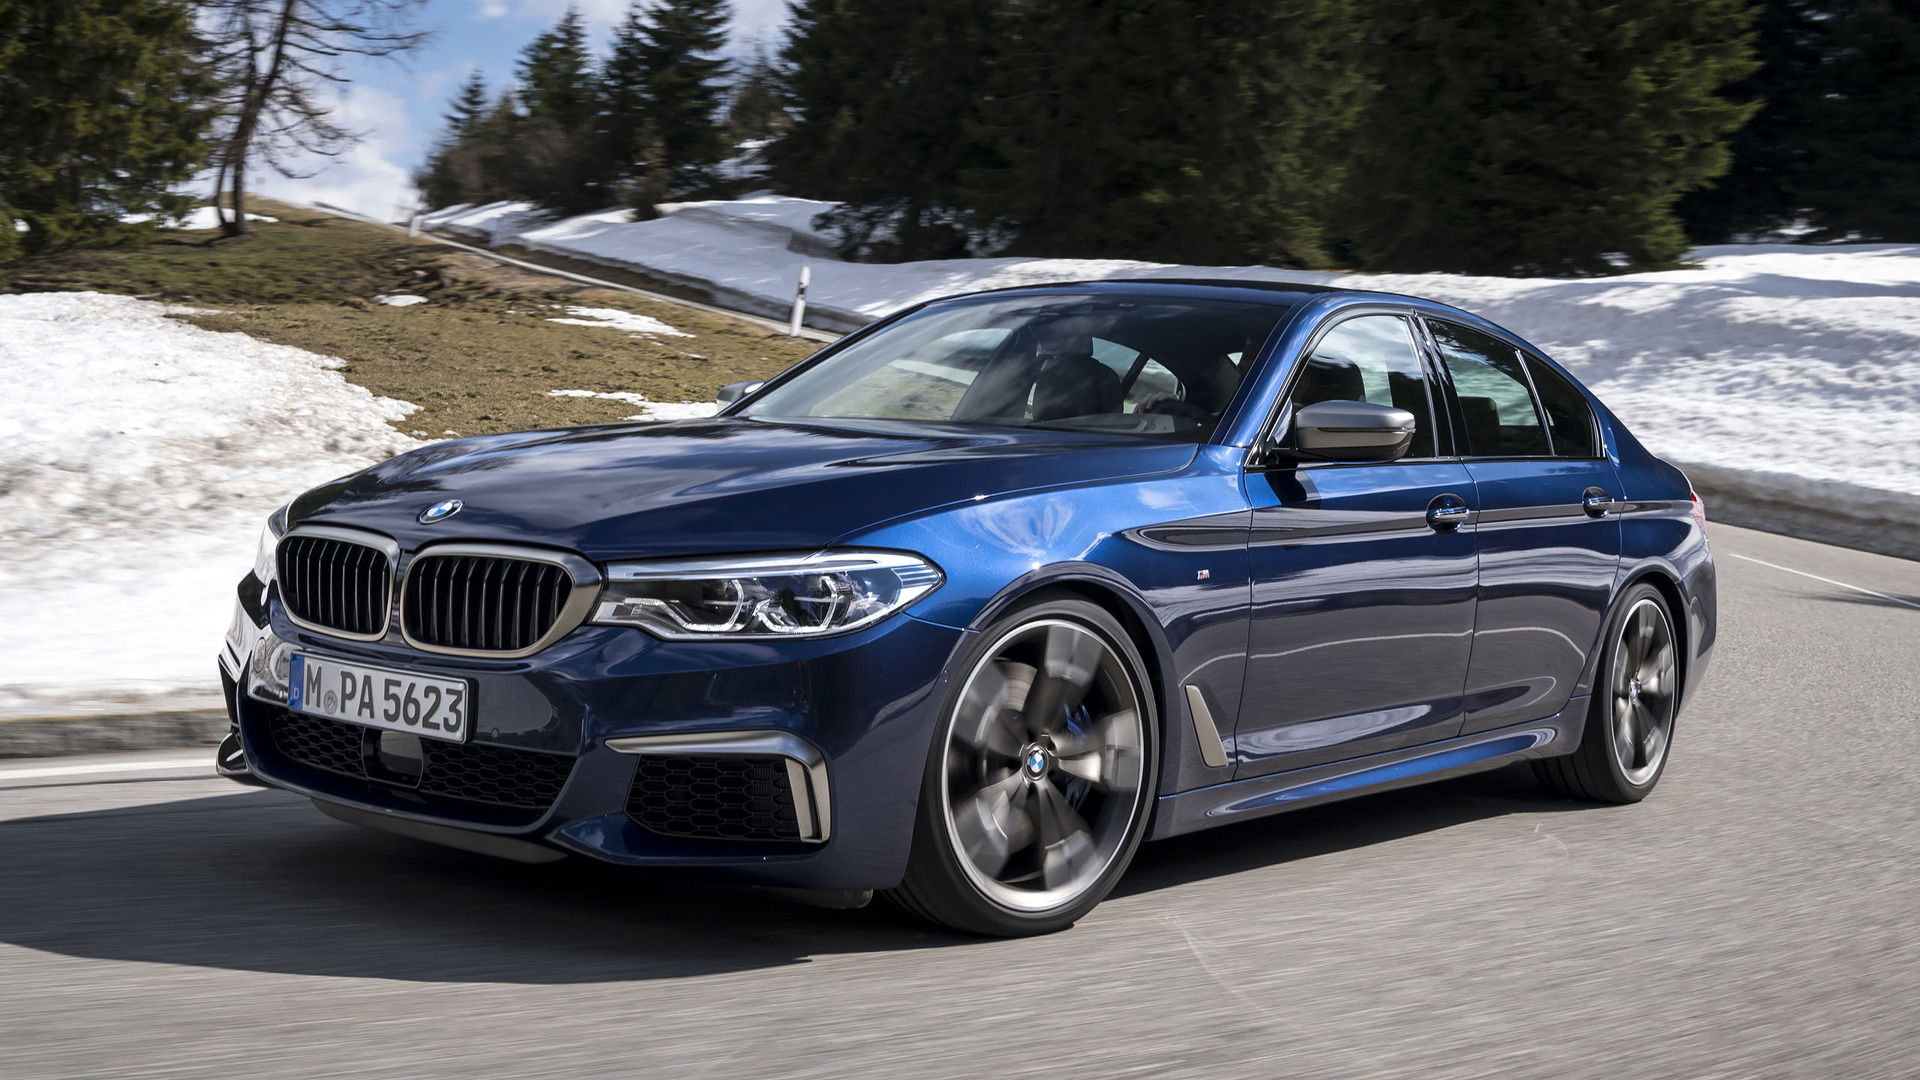 2020 bmw m550i xdrive gains more power in europe u s 2020 bmw m550i xdrive gains more power in europe u s